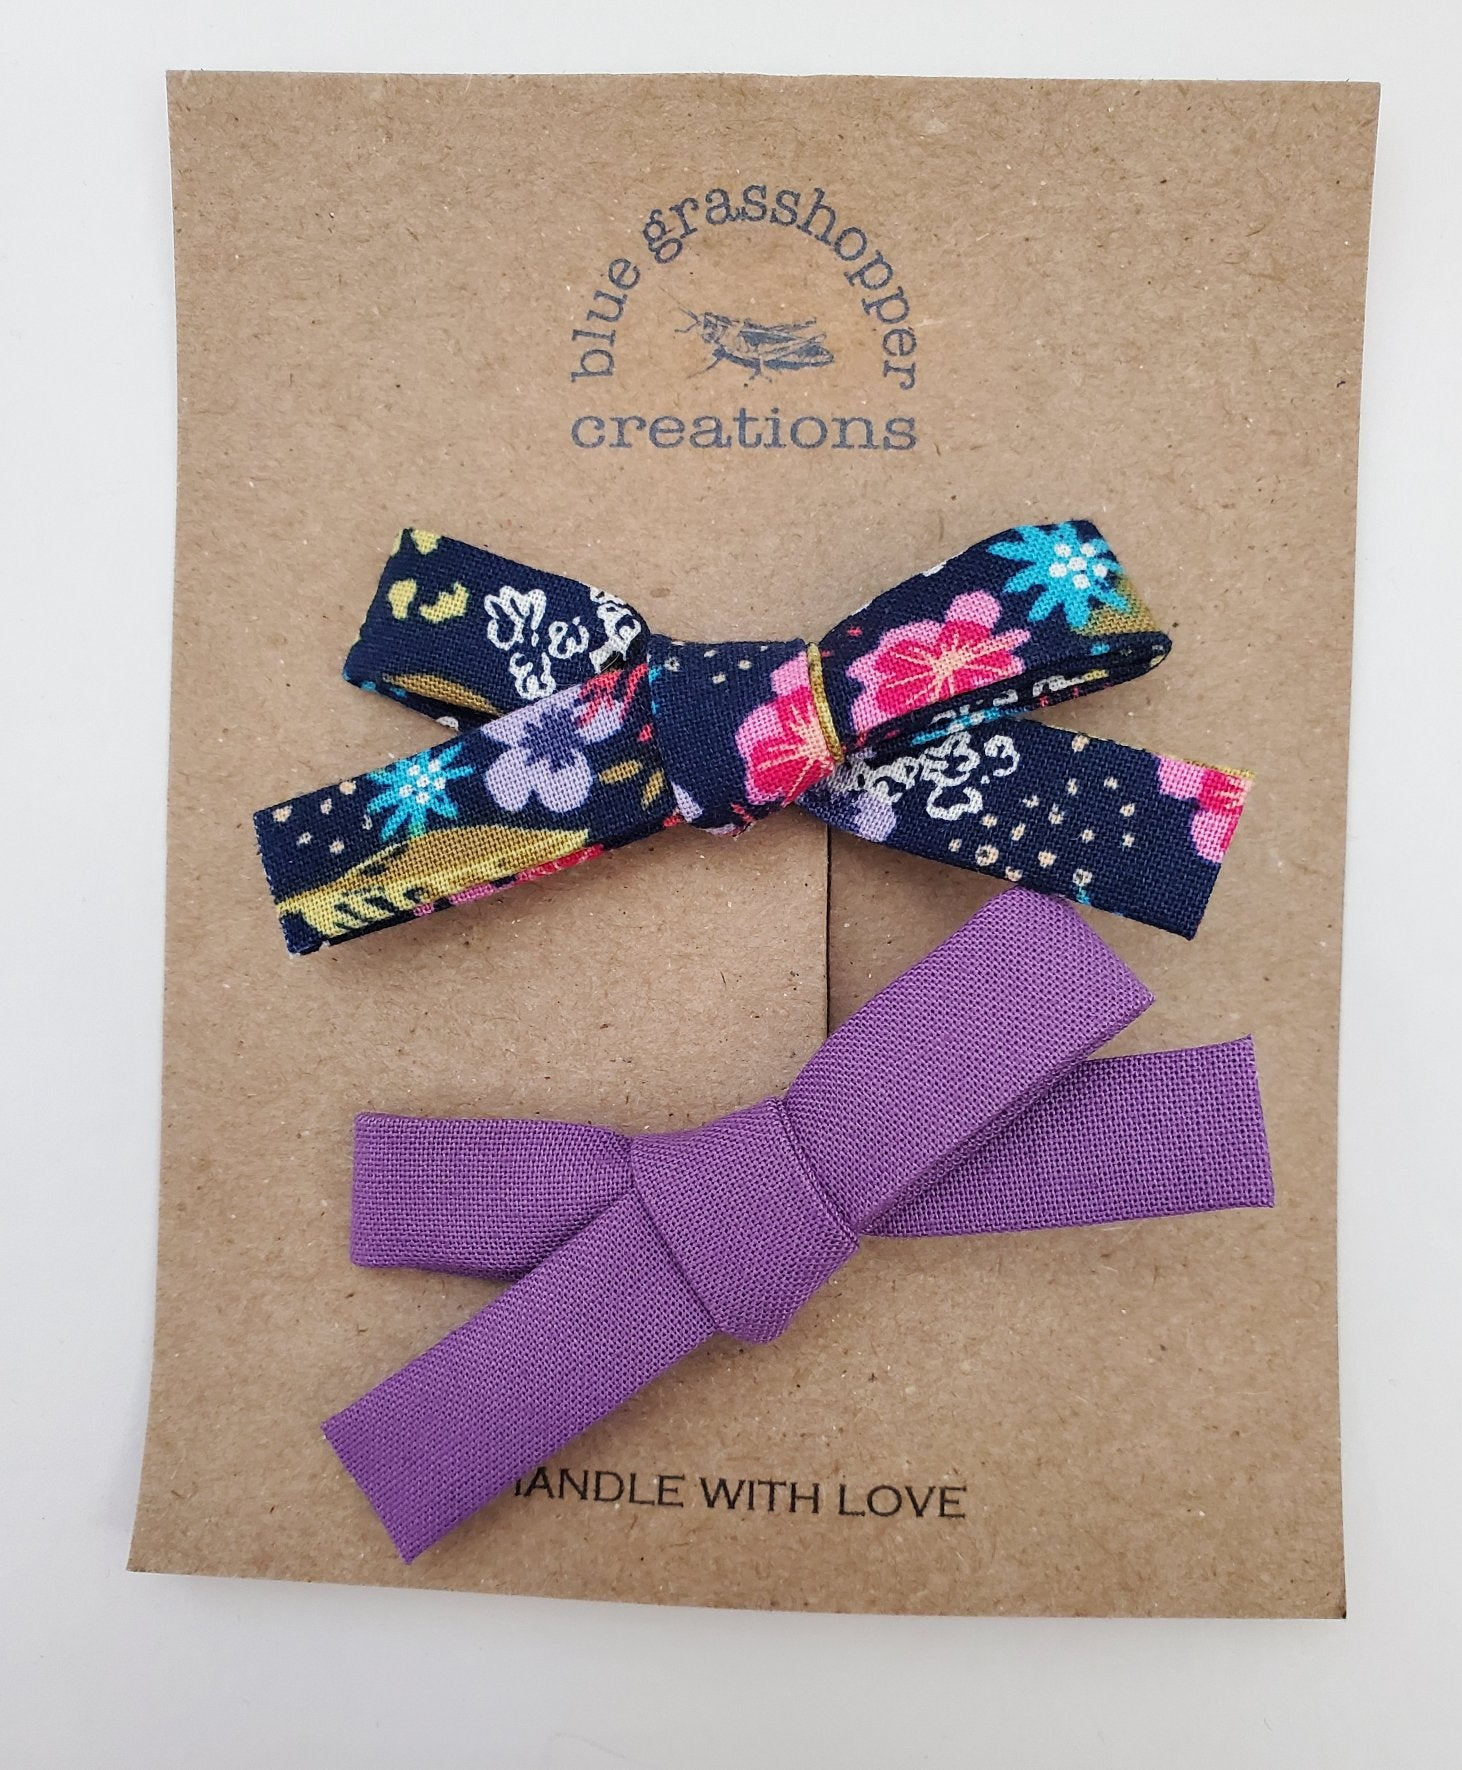 Blue Grasshopper Creations 2pc Hand-Tied Bow Set - Floral & Purple